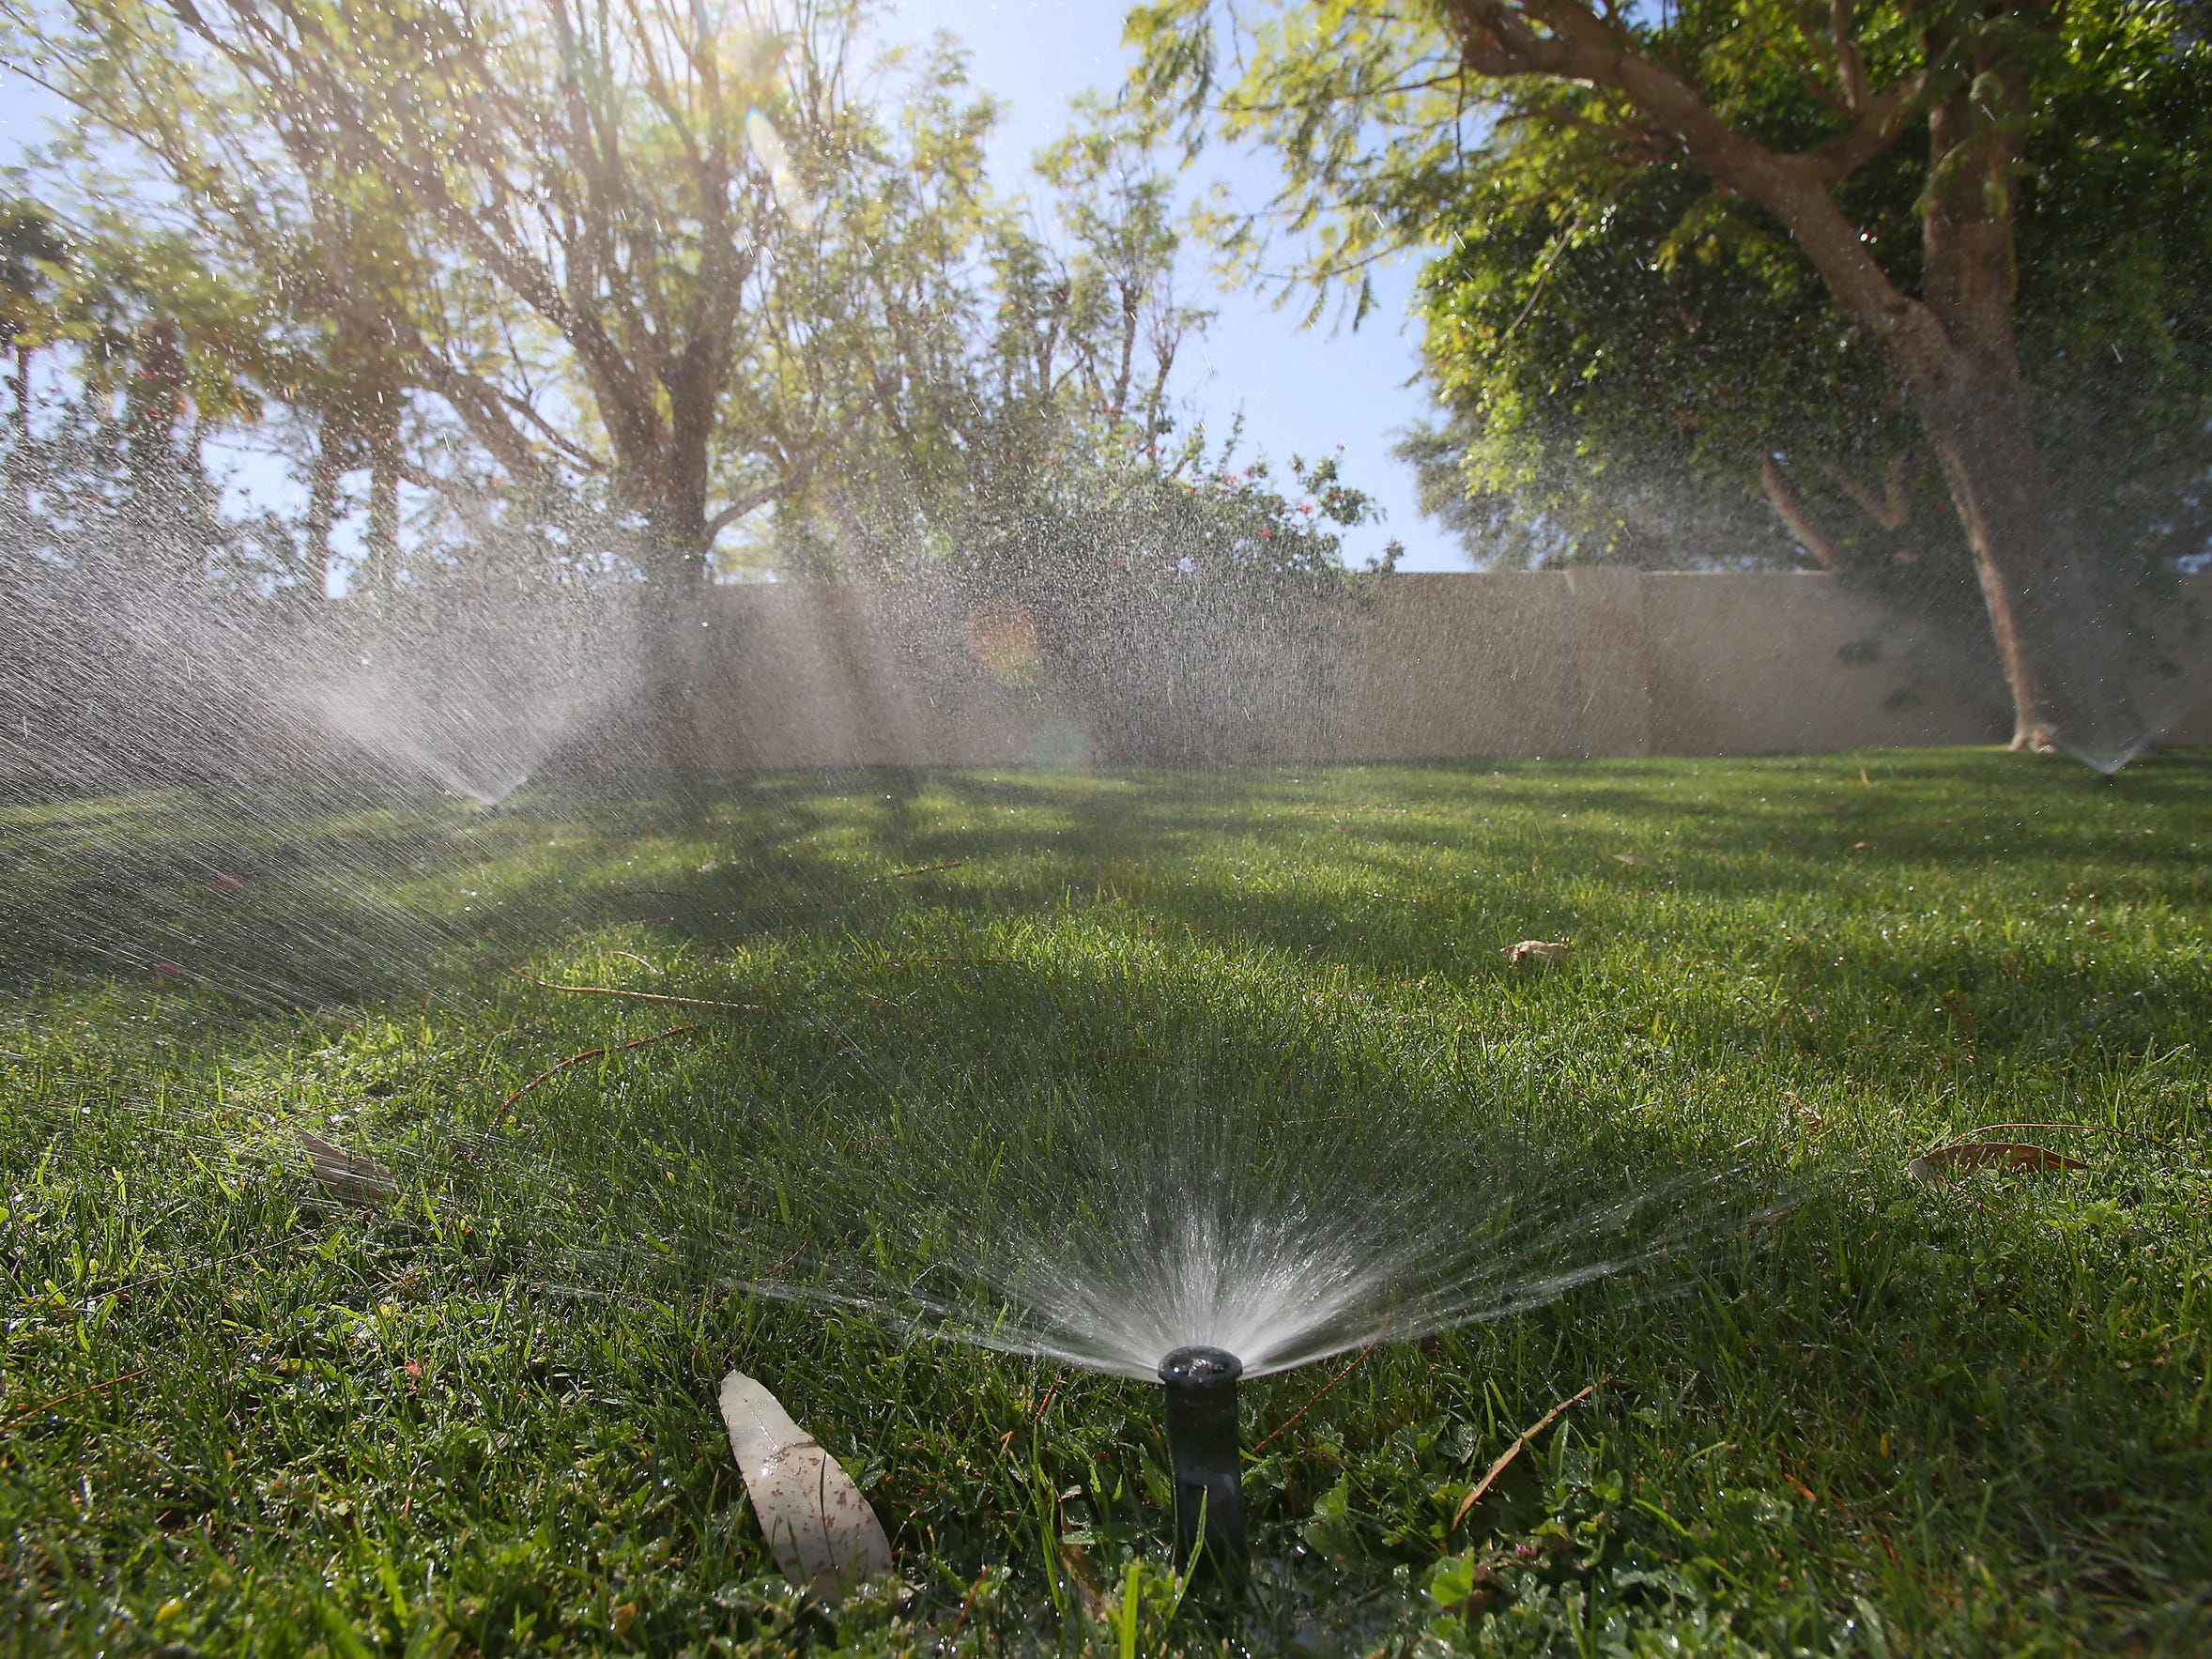 Sprinklers water a lawn at a home that is supplied